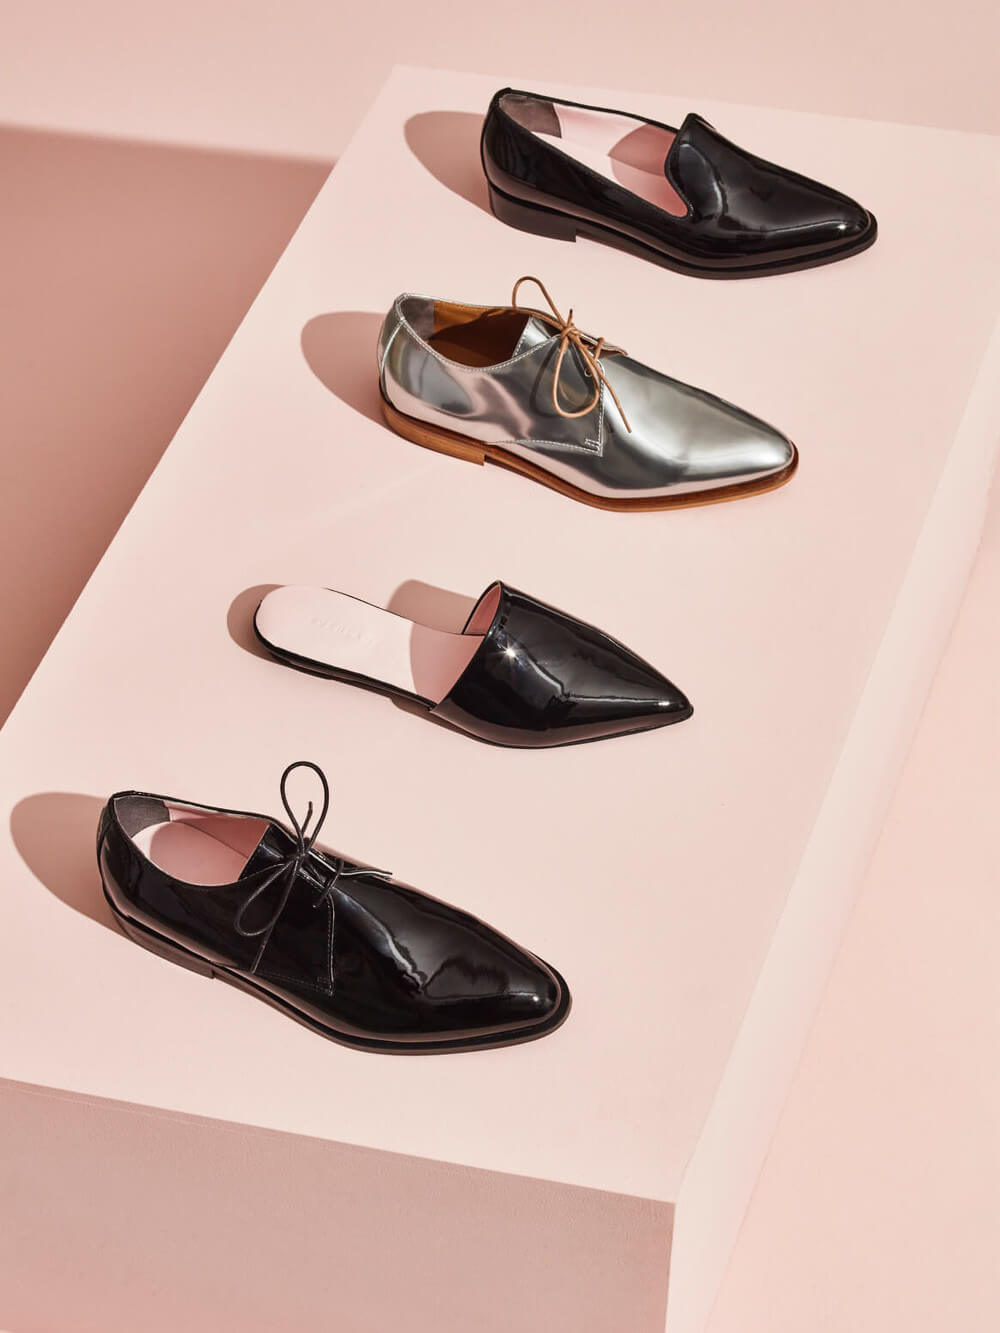 Everlane E2 capsule shoes